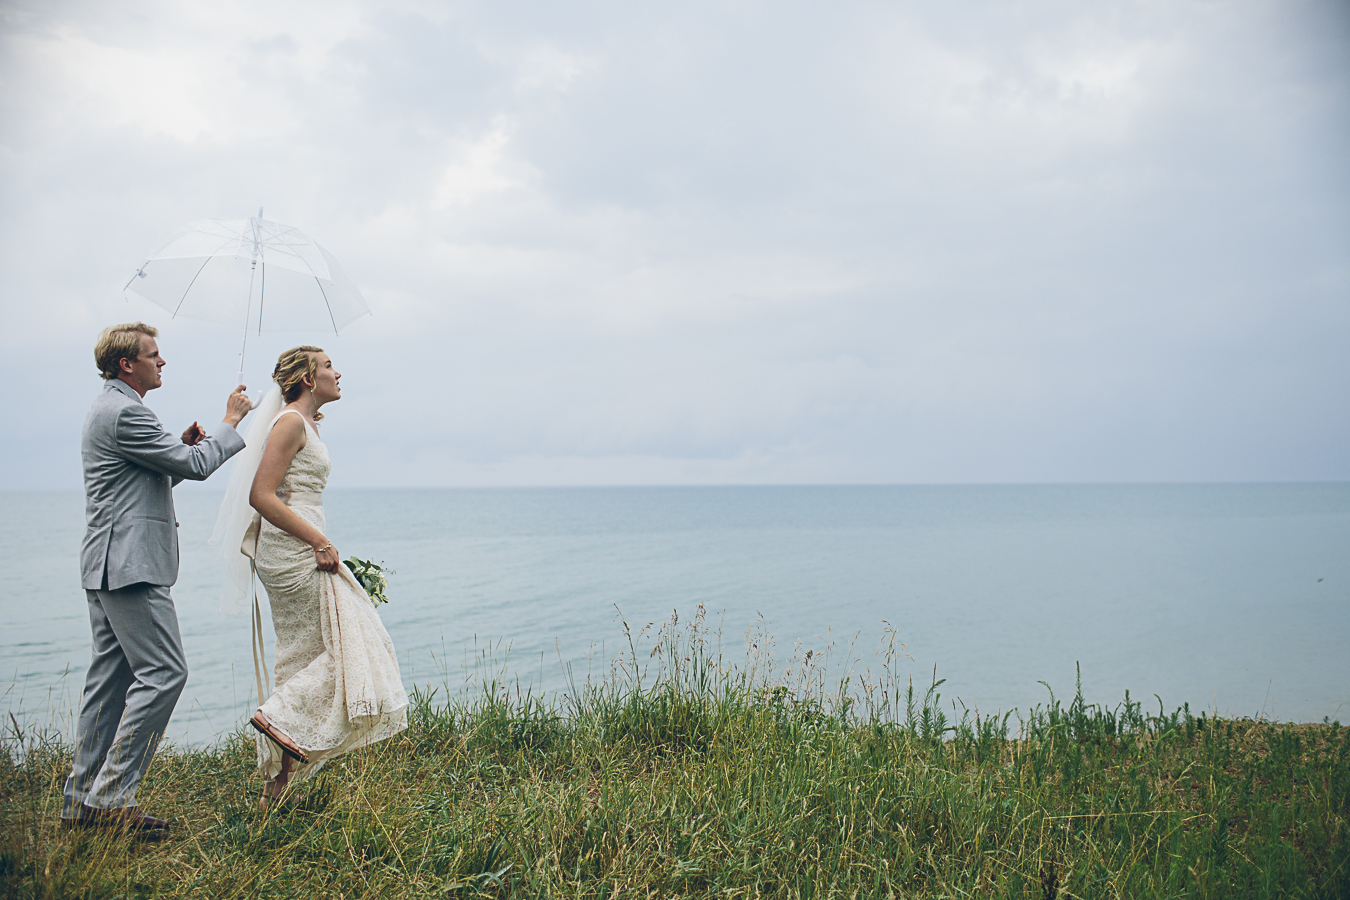 bride and groom with umbrella. On the shore of lake Huron